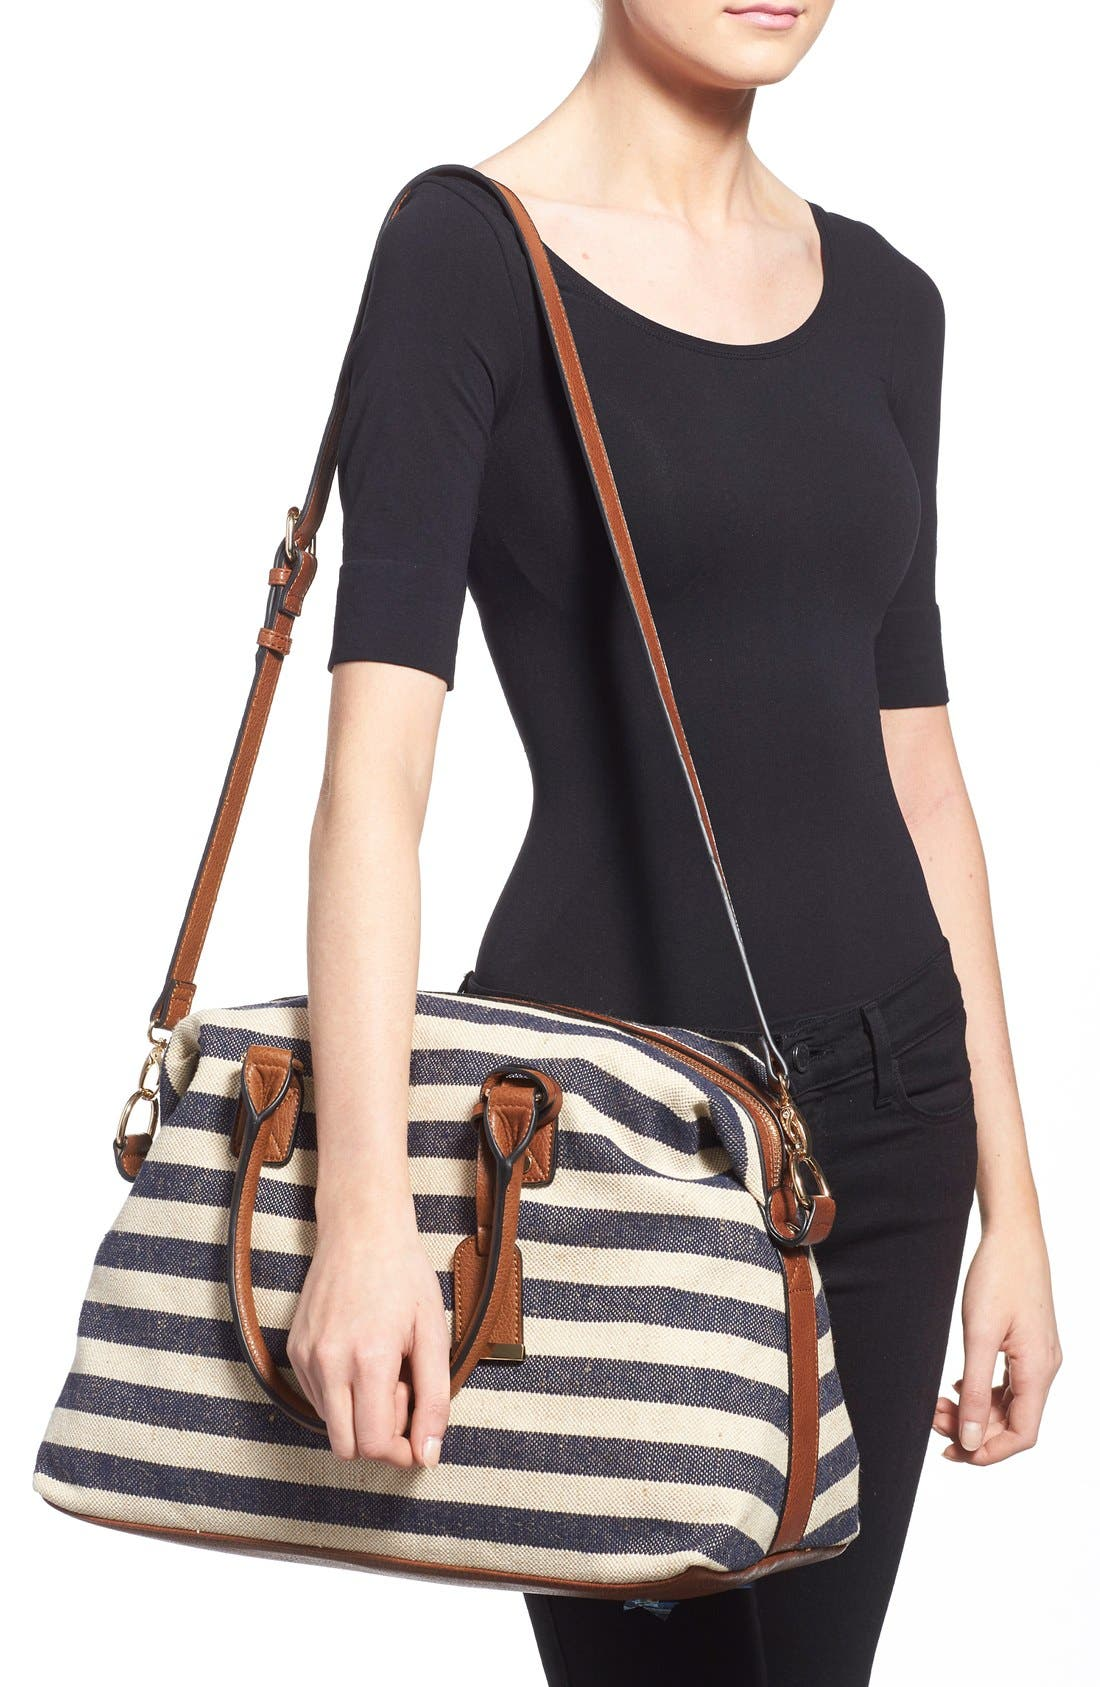 'Leighton' Stripe Duffel Bag,                             Alternate thumbnail 2, color,                             Navy/ Cream